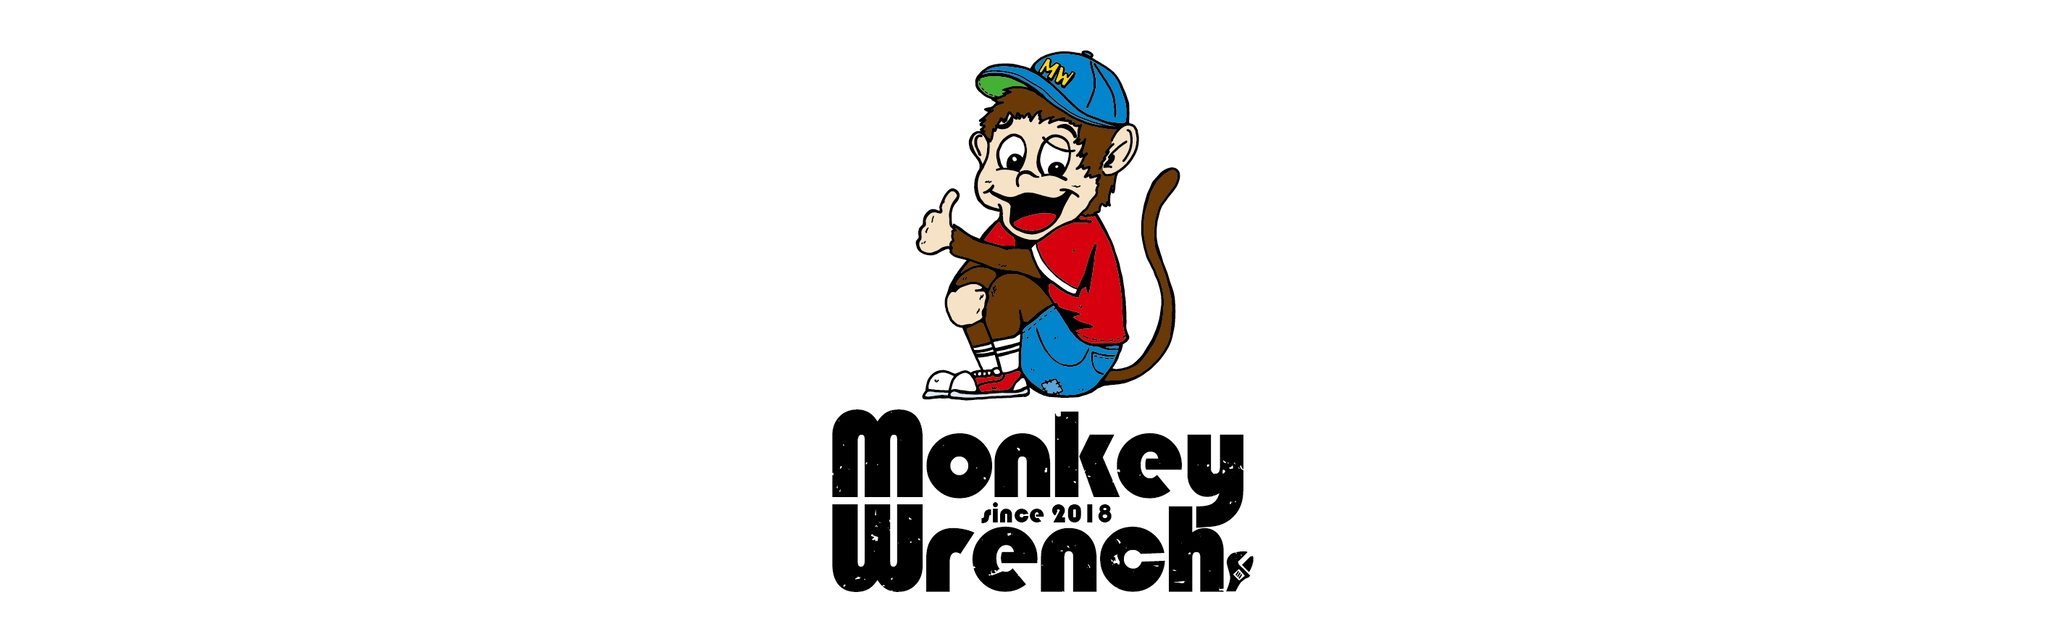 Monkey Wrench (モンキーレンチ) | 公式通販サイト